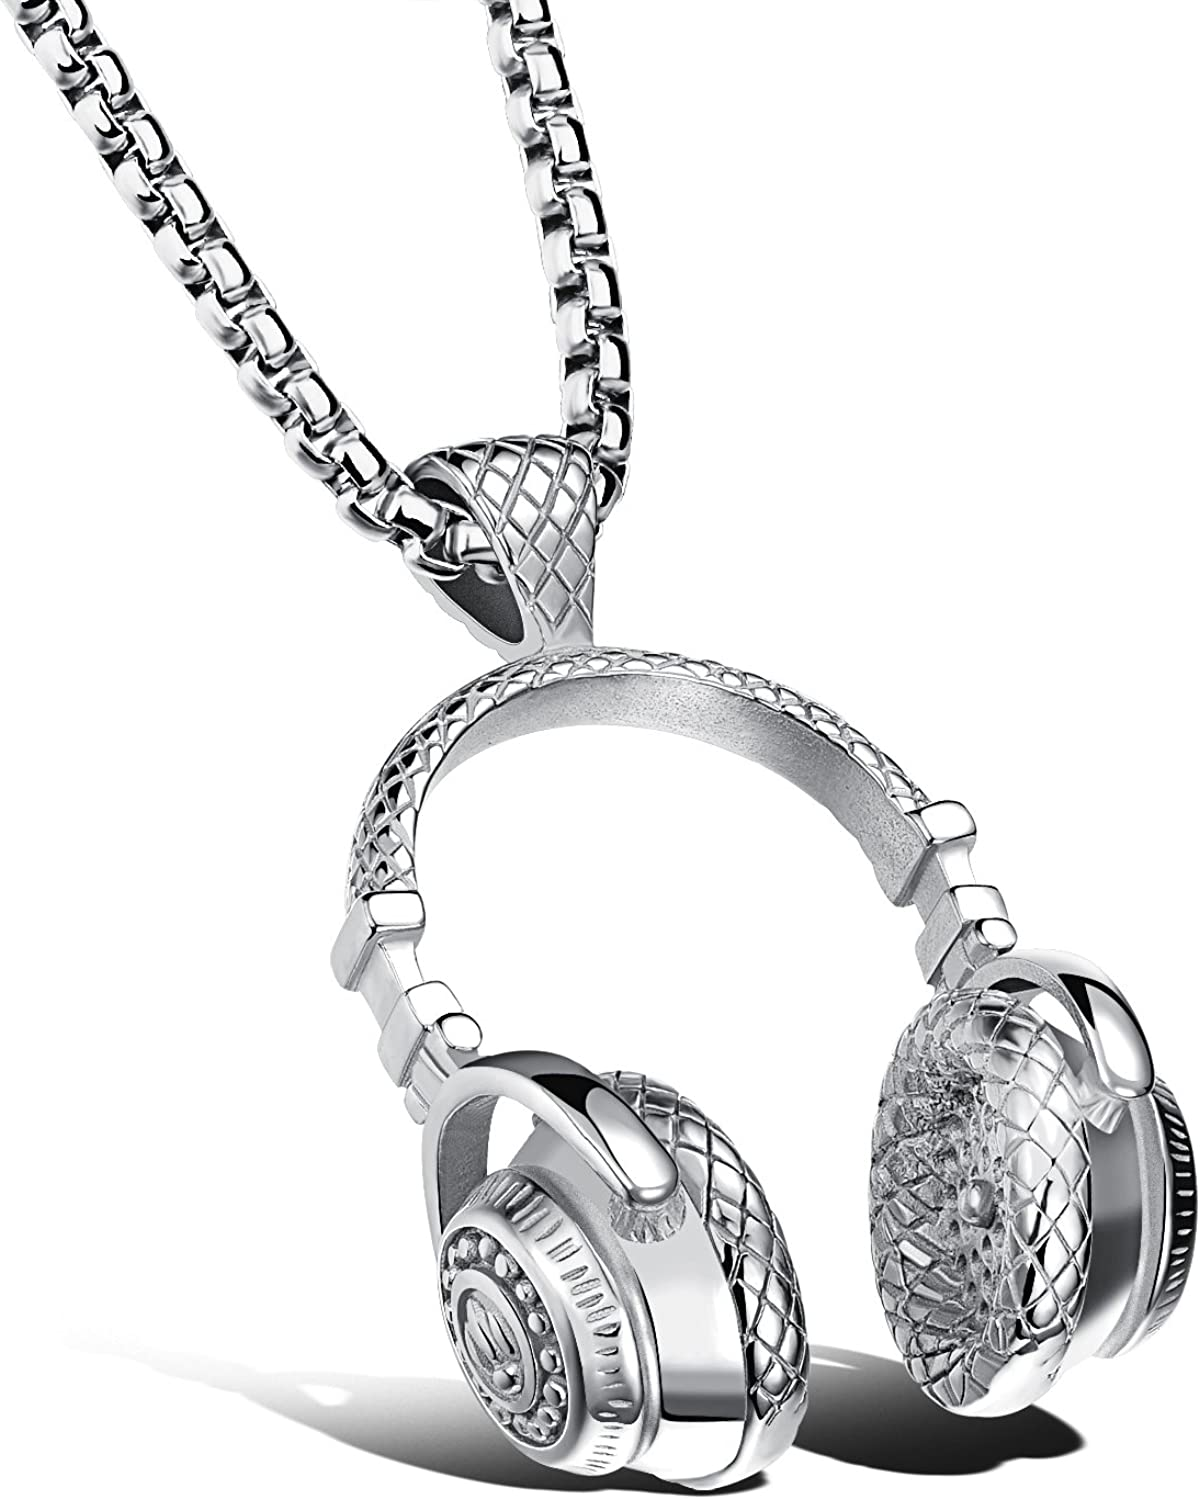 FCZDQ 316L Stainless Steel Mens Music Headset Pendant Necklace